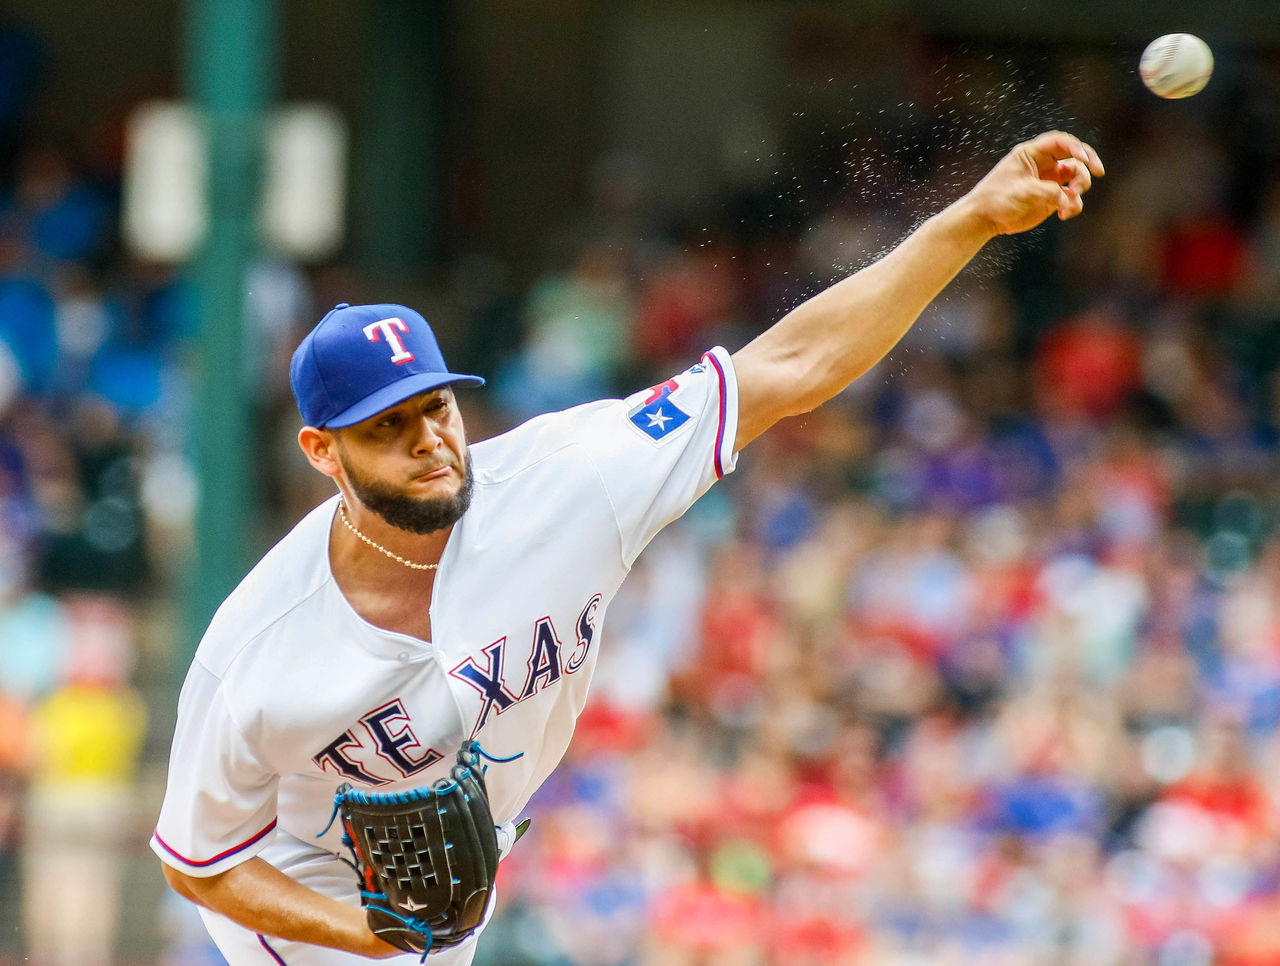 Cropped 2017 06 22t191510z 531685672 nocid rtrmadp 3 mlb toronto blue jays at texas rangers